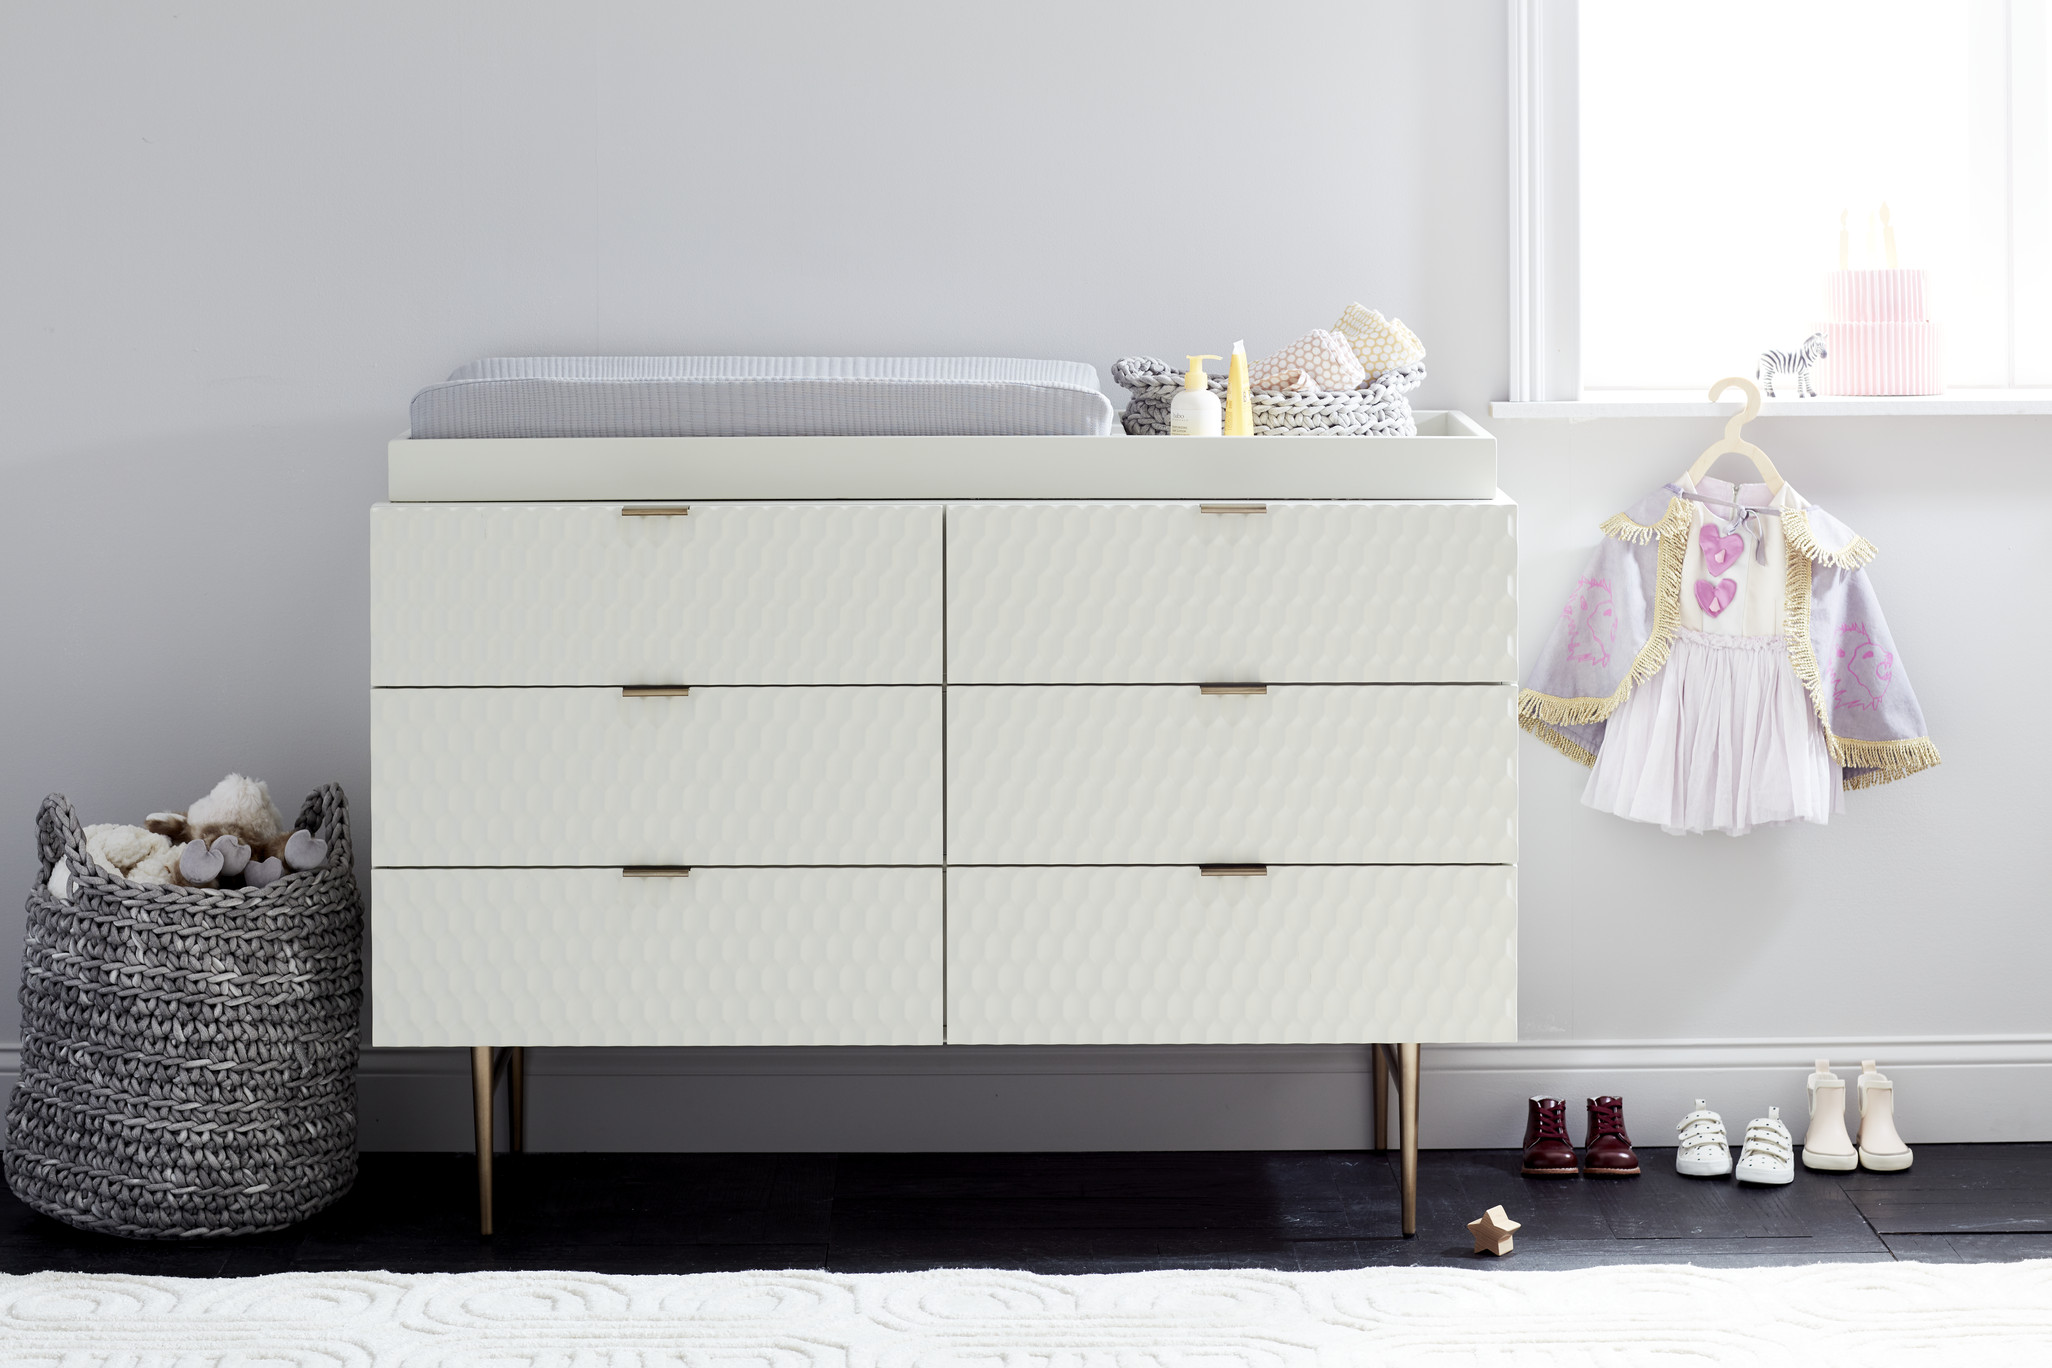 West Elm Modern Baby and Kids Furniture and Home Decor Audrey changing table dresser modern white changing table gold hardware and legs midcentury modern baby furniture